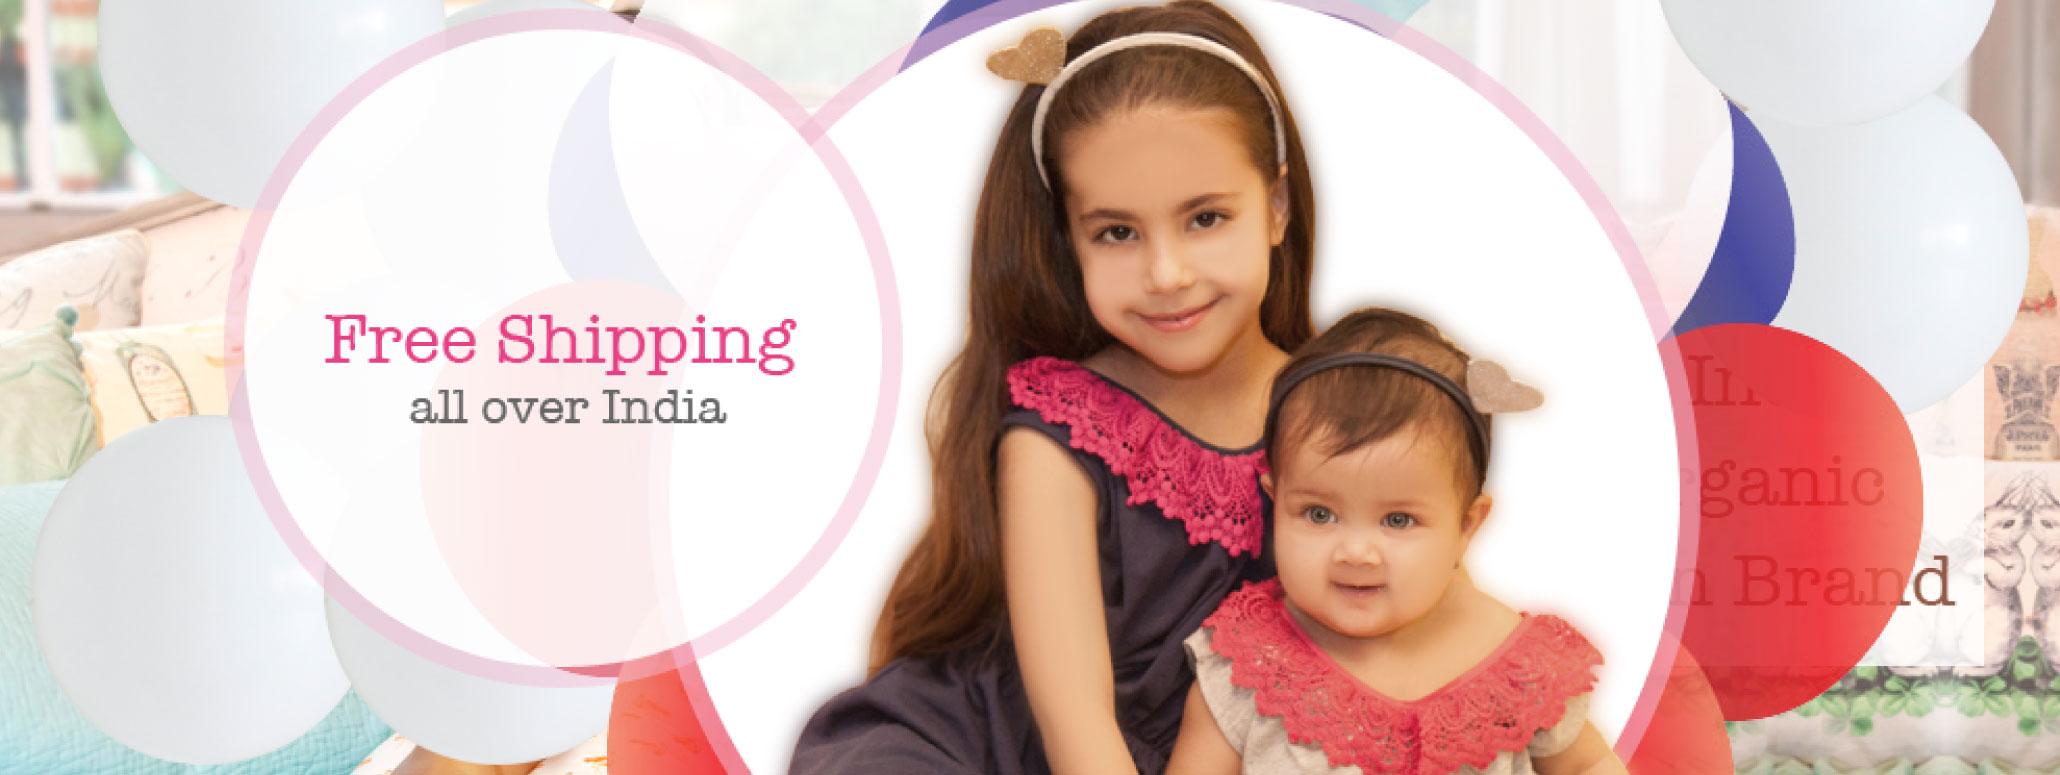 Baby Clothes shipped for free all over India